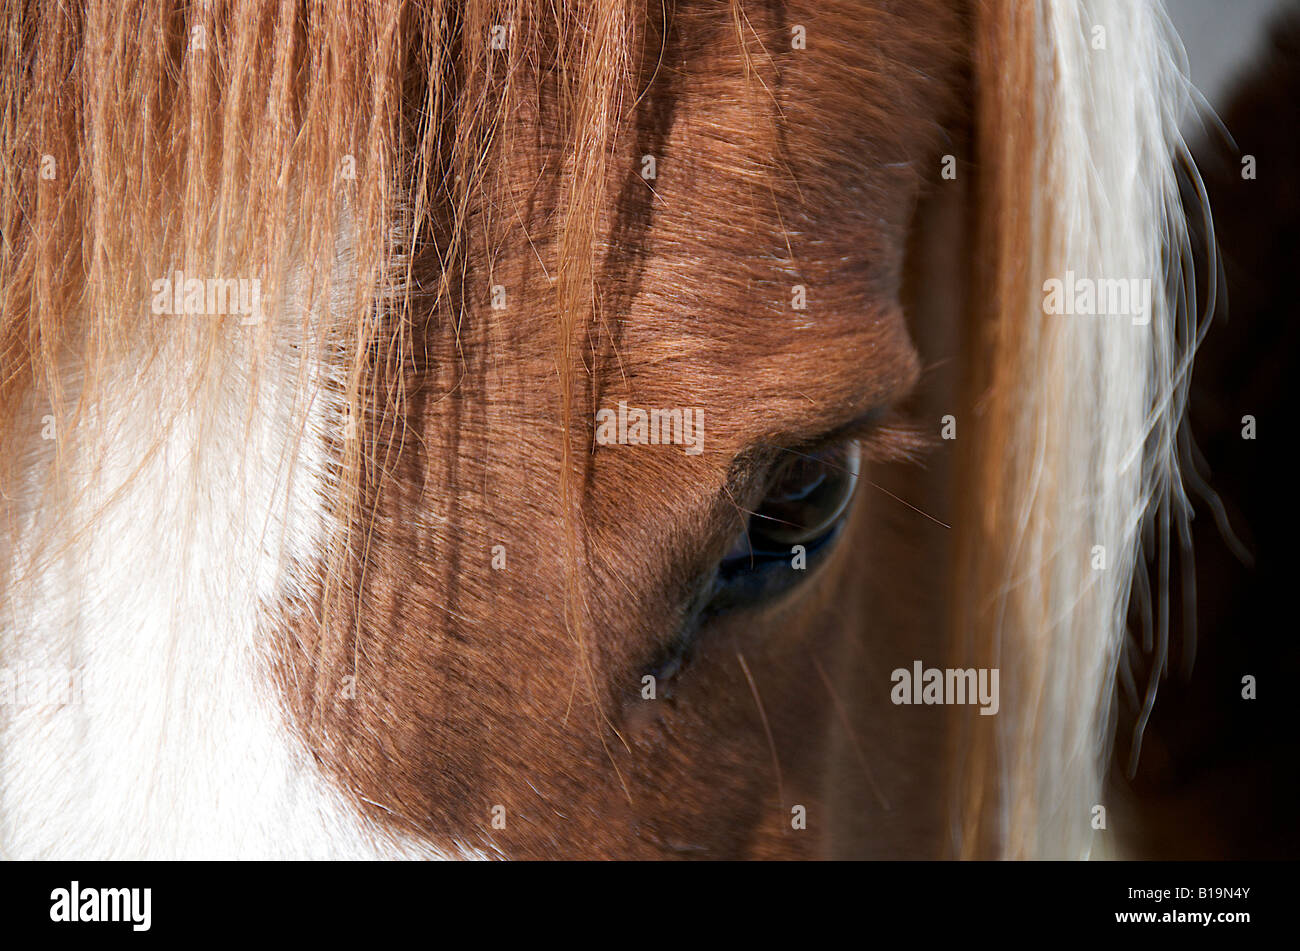 Eye of a horse close up - Stock Image